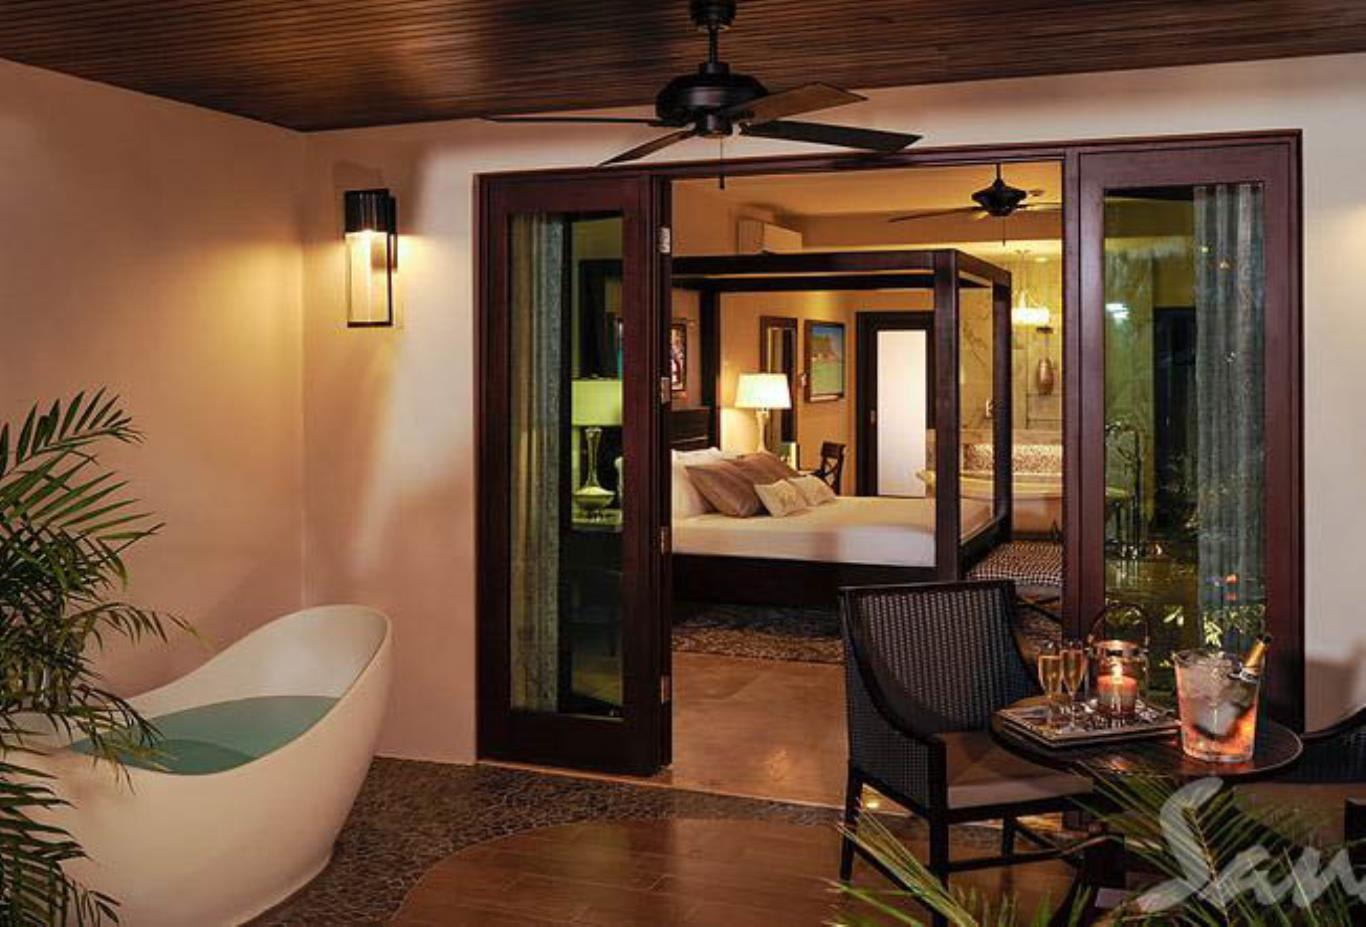 Honeymoon Grand Luxury Walkout Butler Suite with Patio Tranquility Soaking Tub - HWGBT